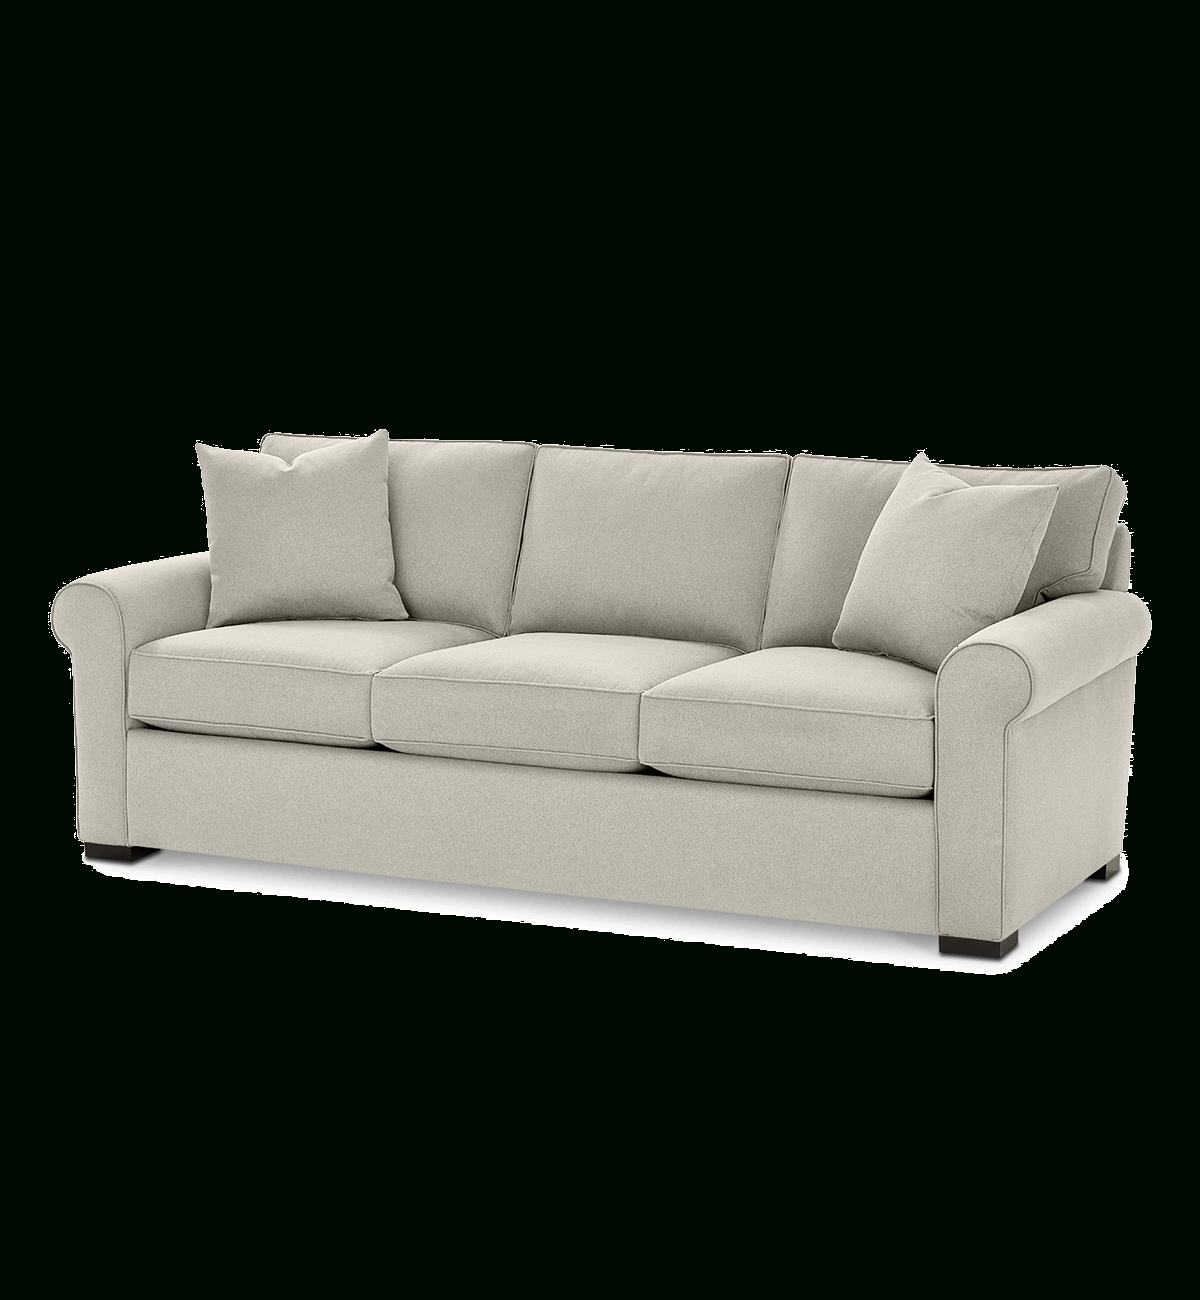 Trendy Couches And Sofas – Macy's In Macys Leather Sectional Sofas (View 18 of 20)